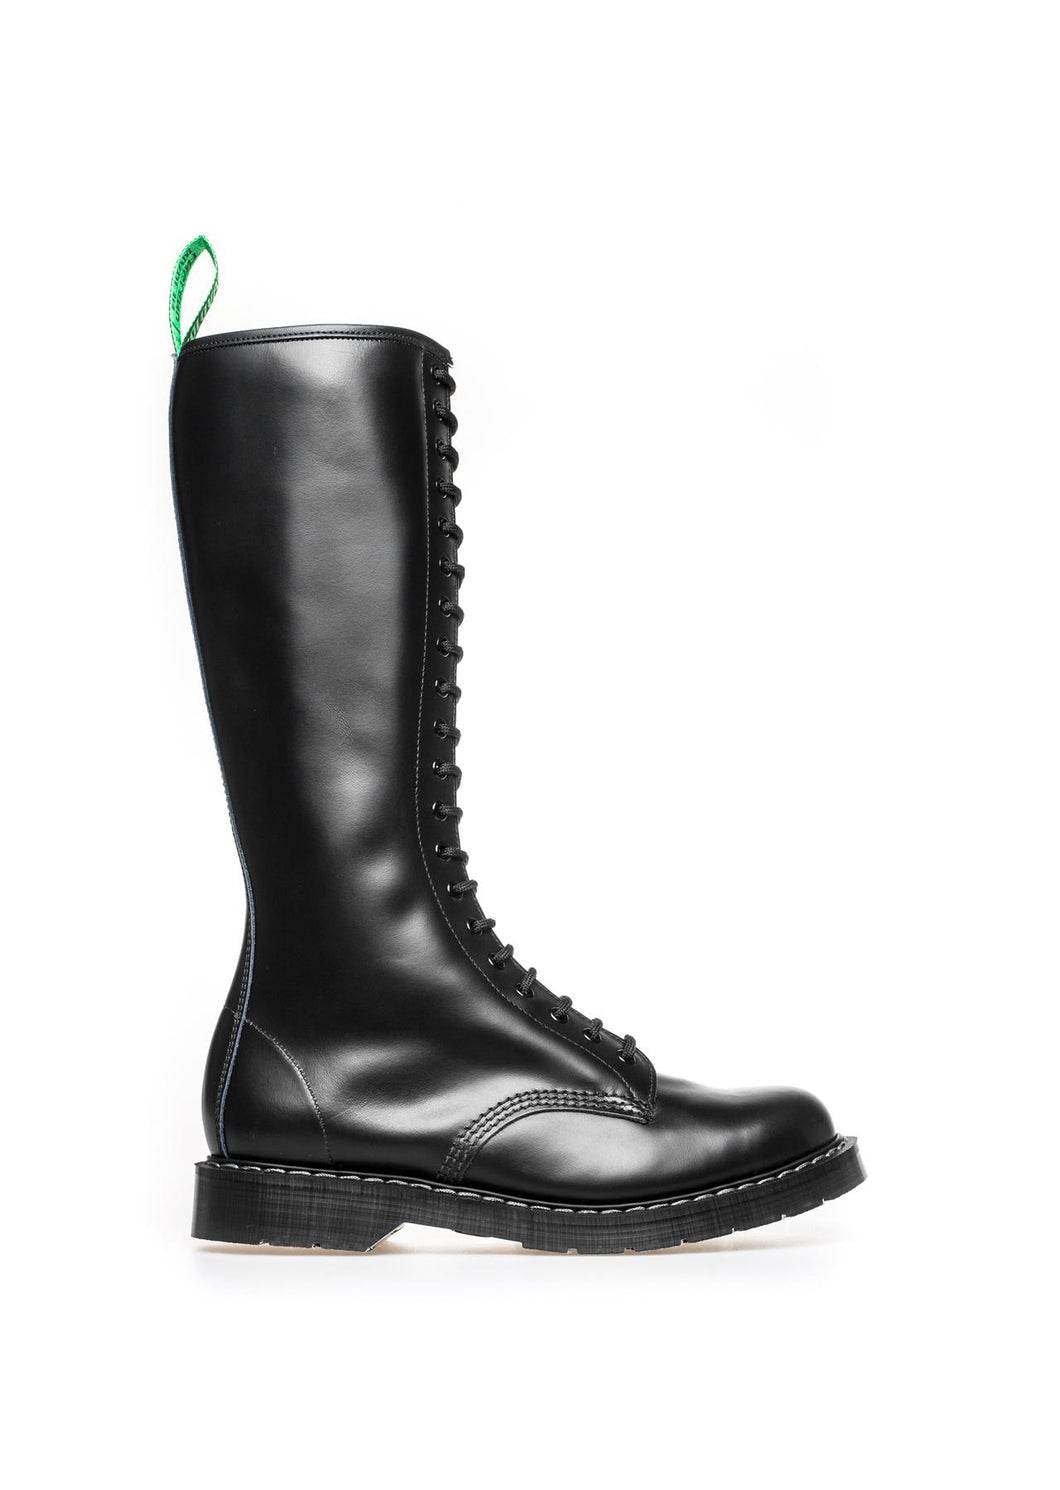 Classic 20 Eye Zipper Derby Boot in Black